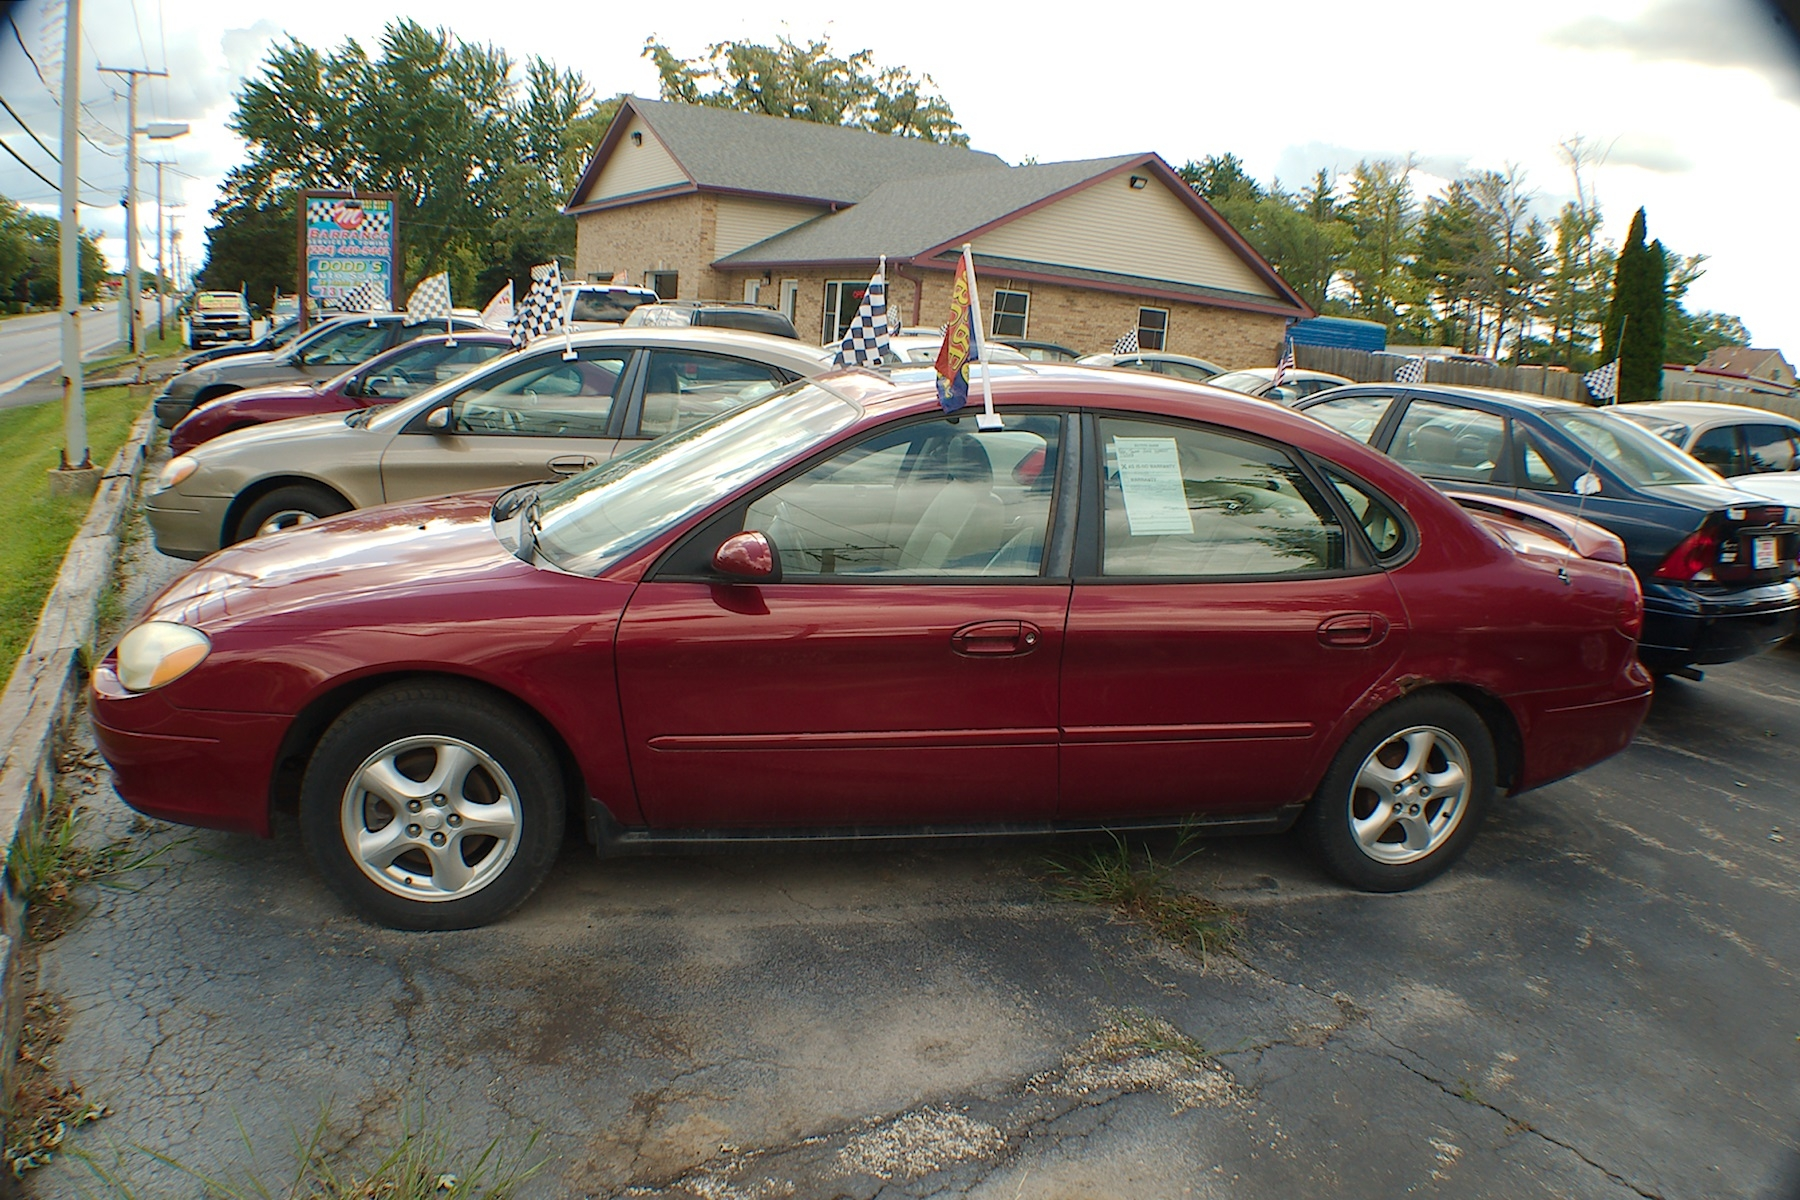 2002 Ford Taurus SES Red Sedan Used Car Sale Antioch Zion Waukegan Lake County Illinois